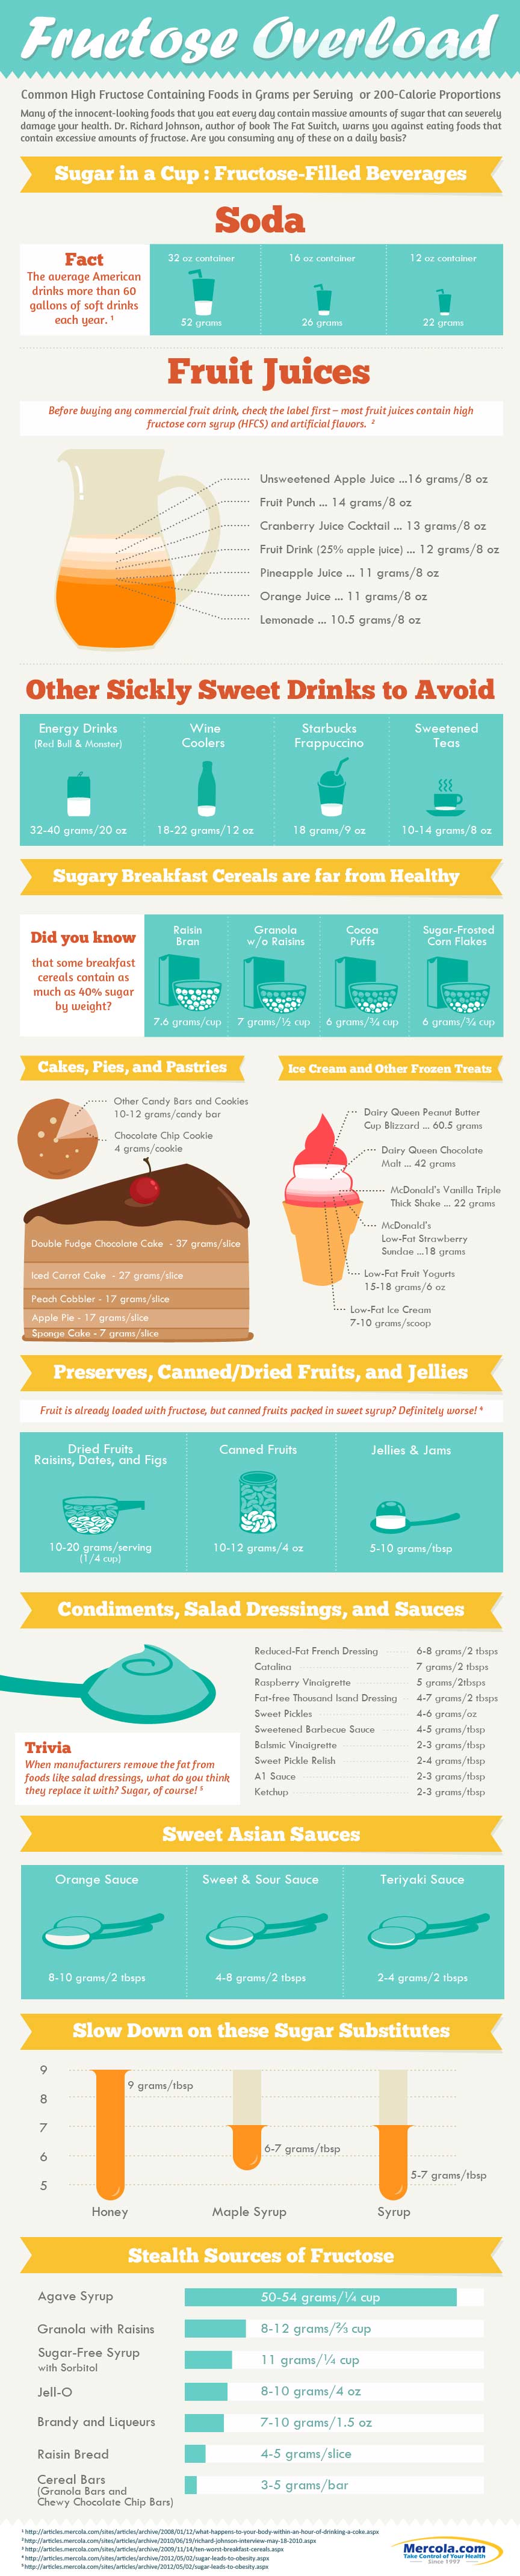 Fructose Hazards Infographic